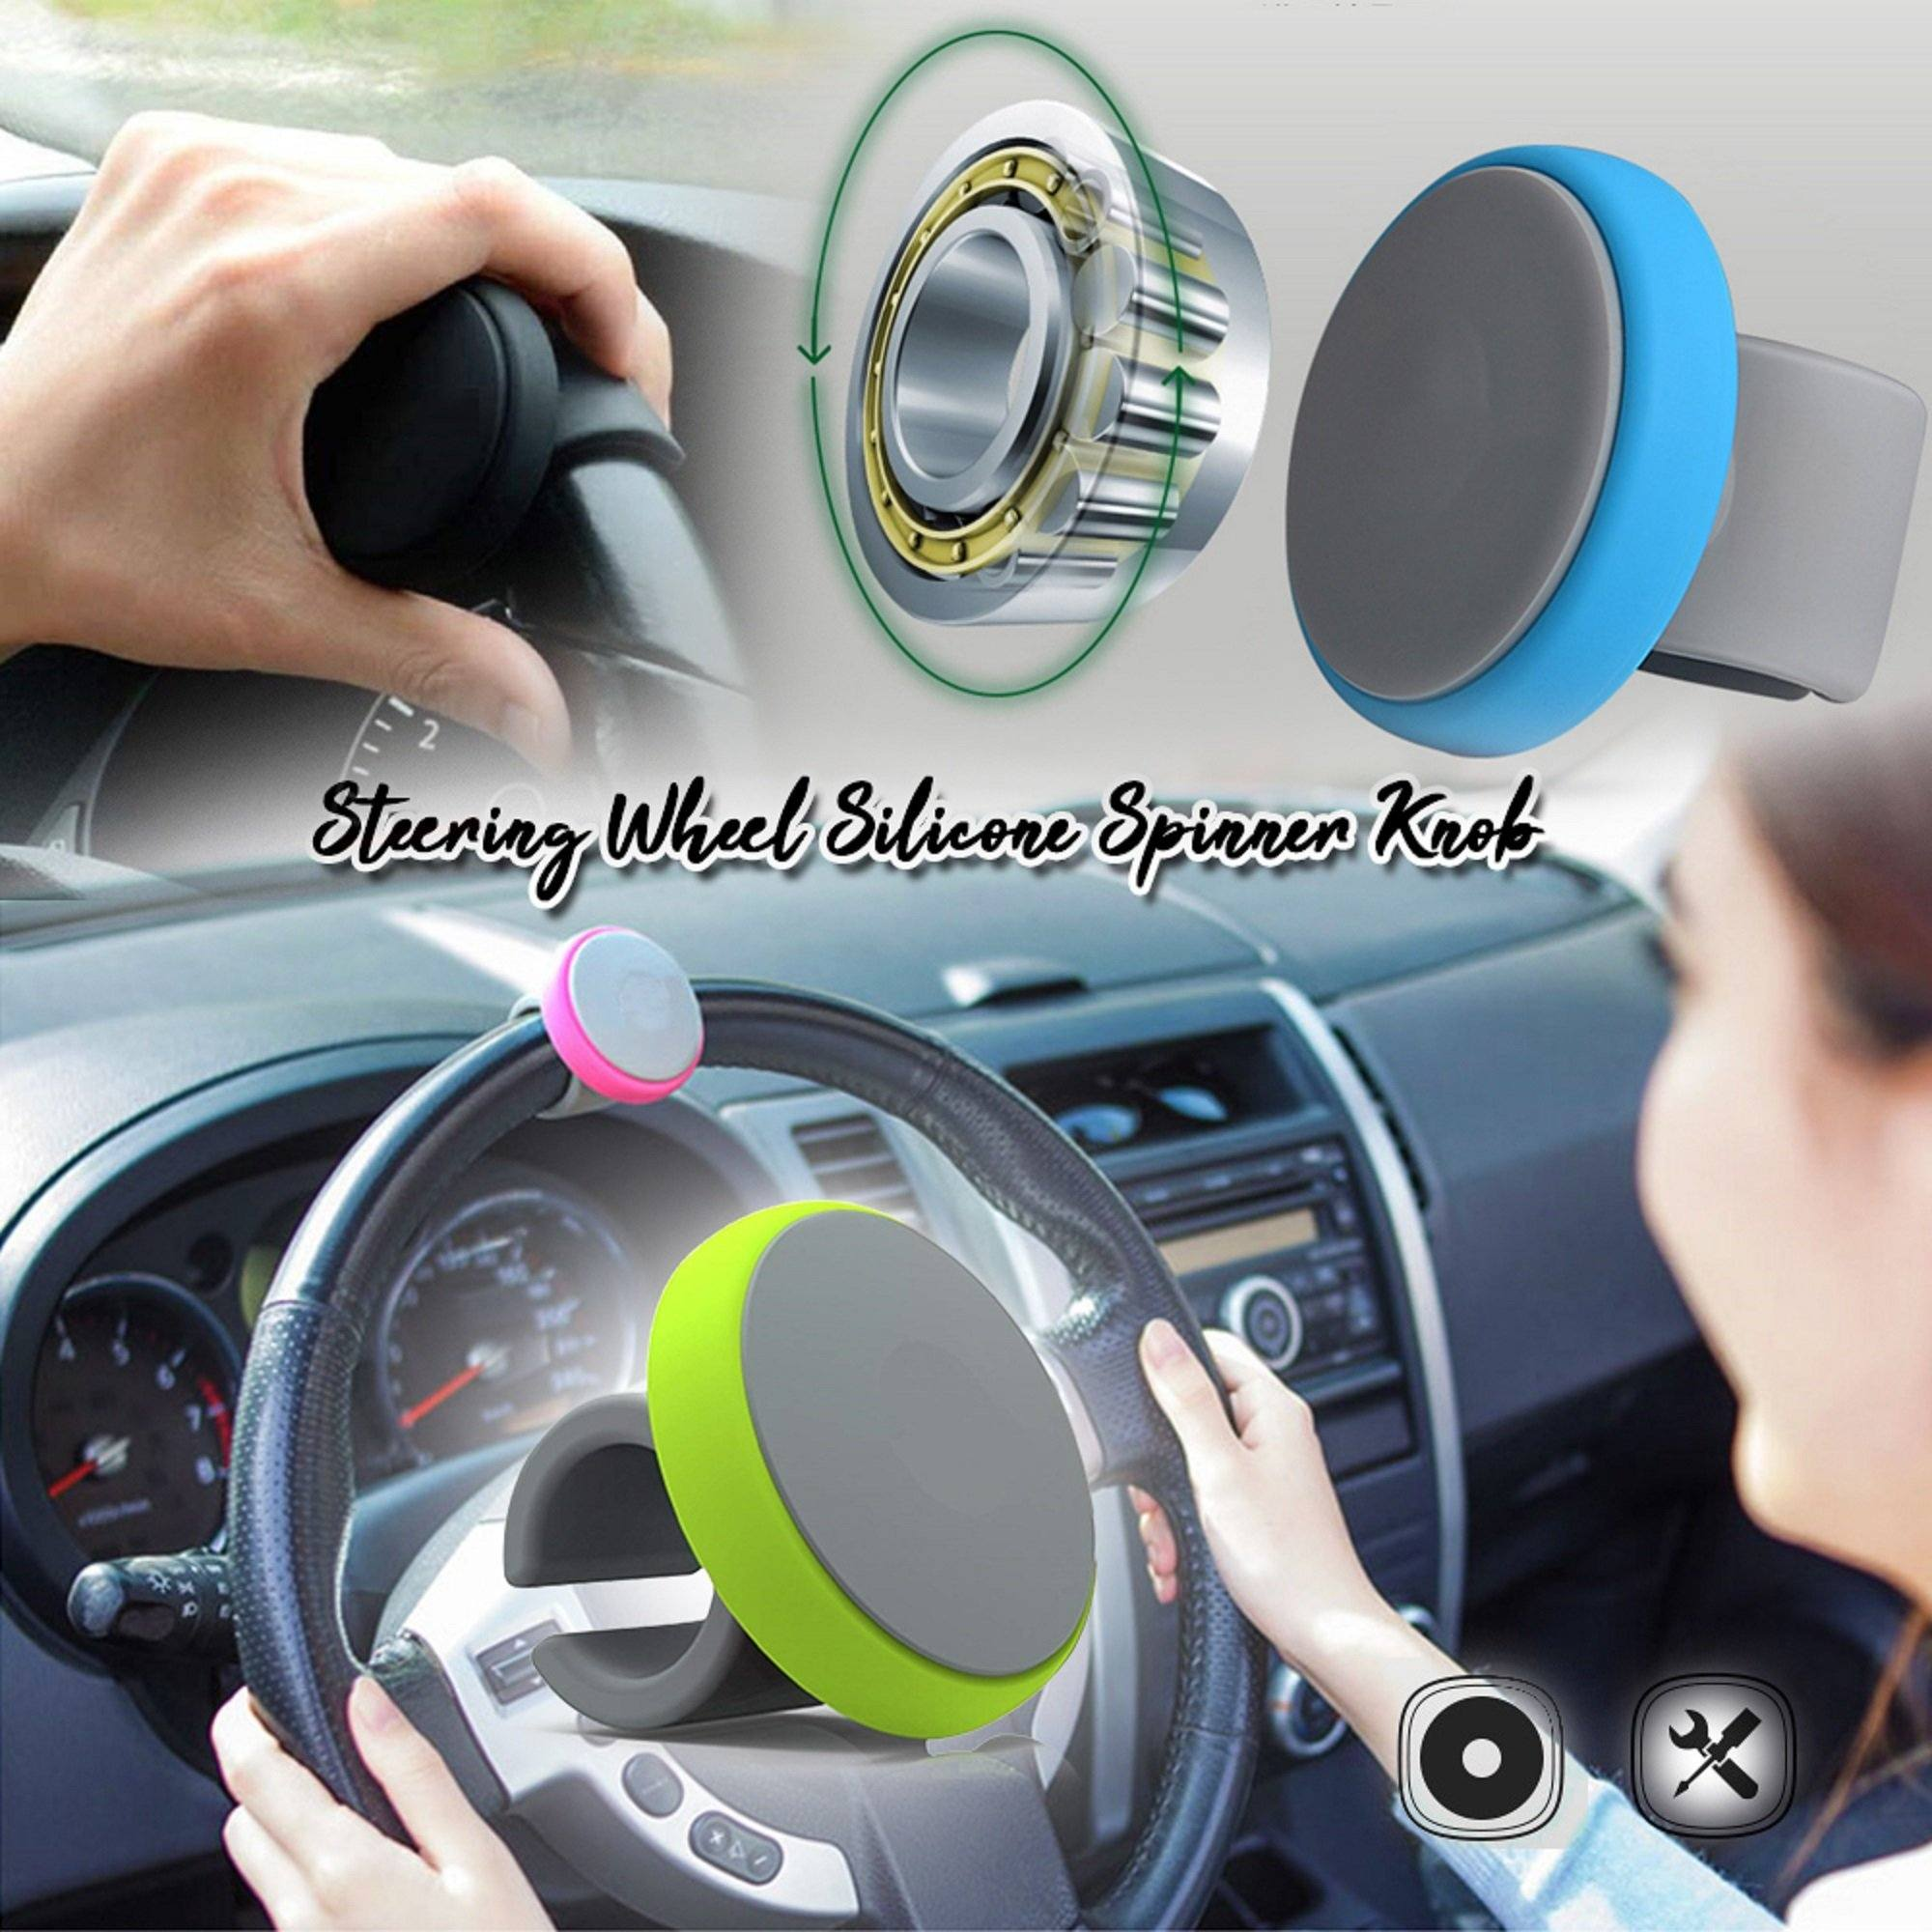 Steering Wheel Silicone Spinner Knob